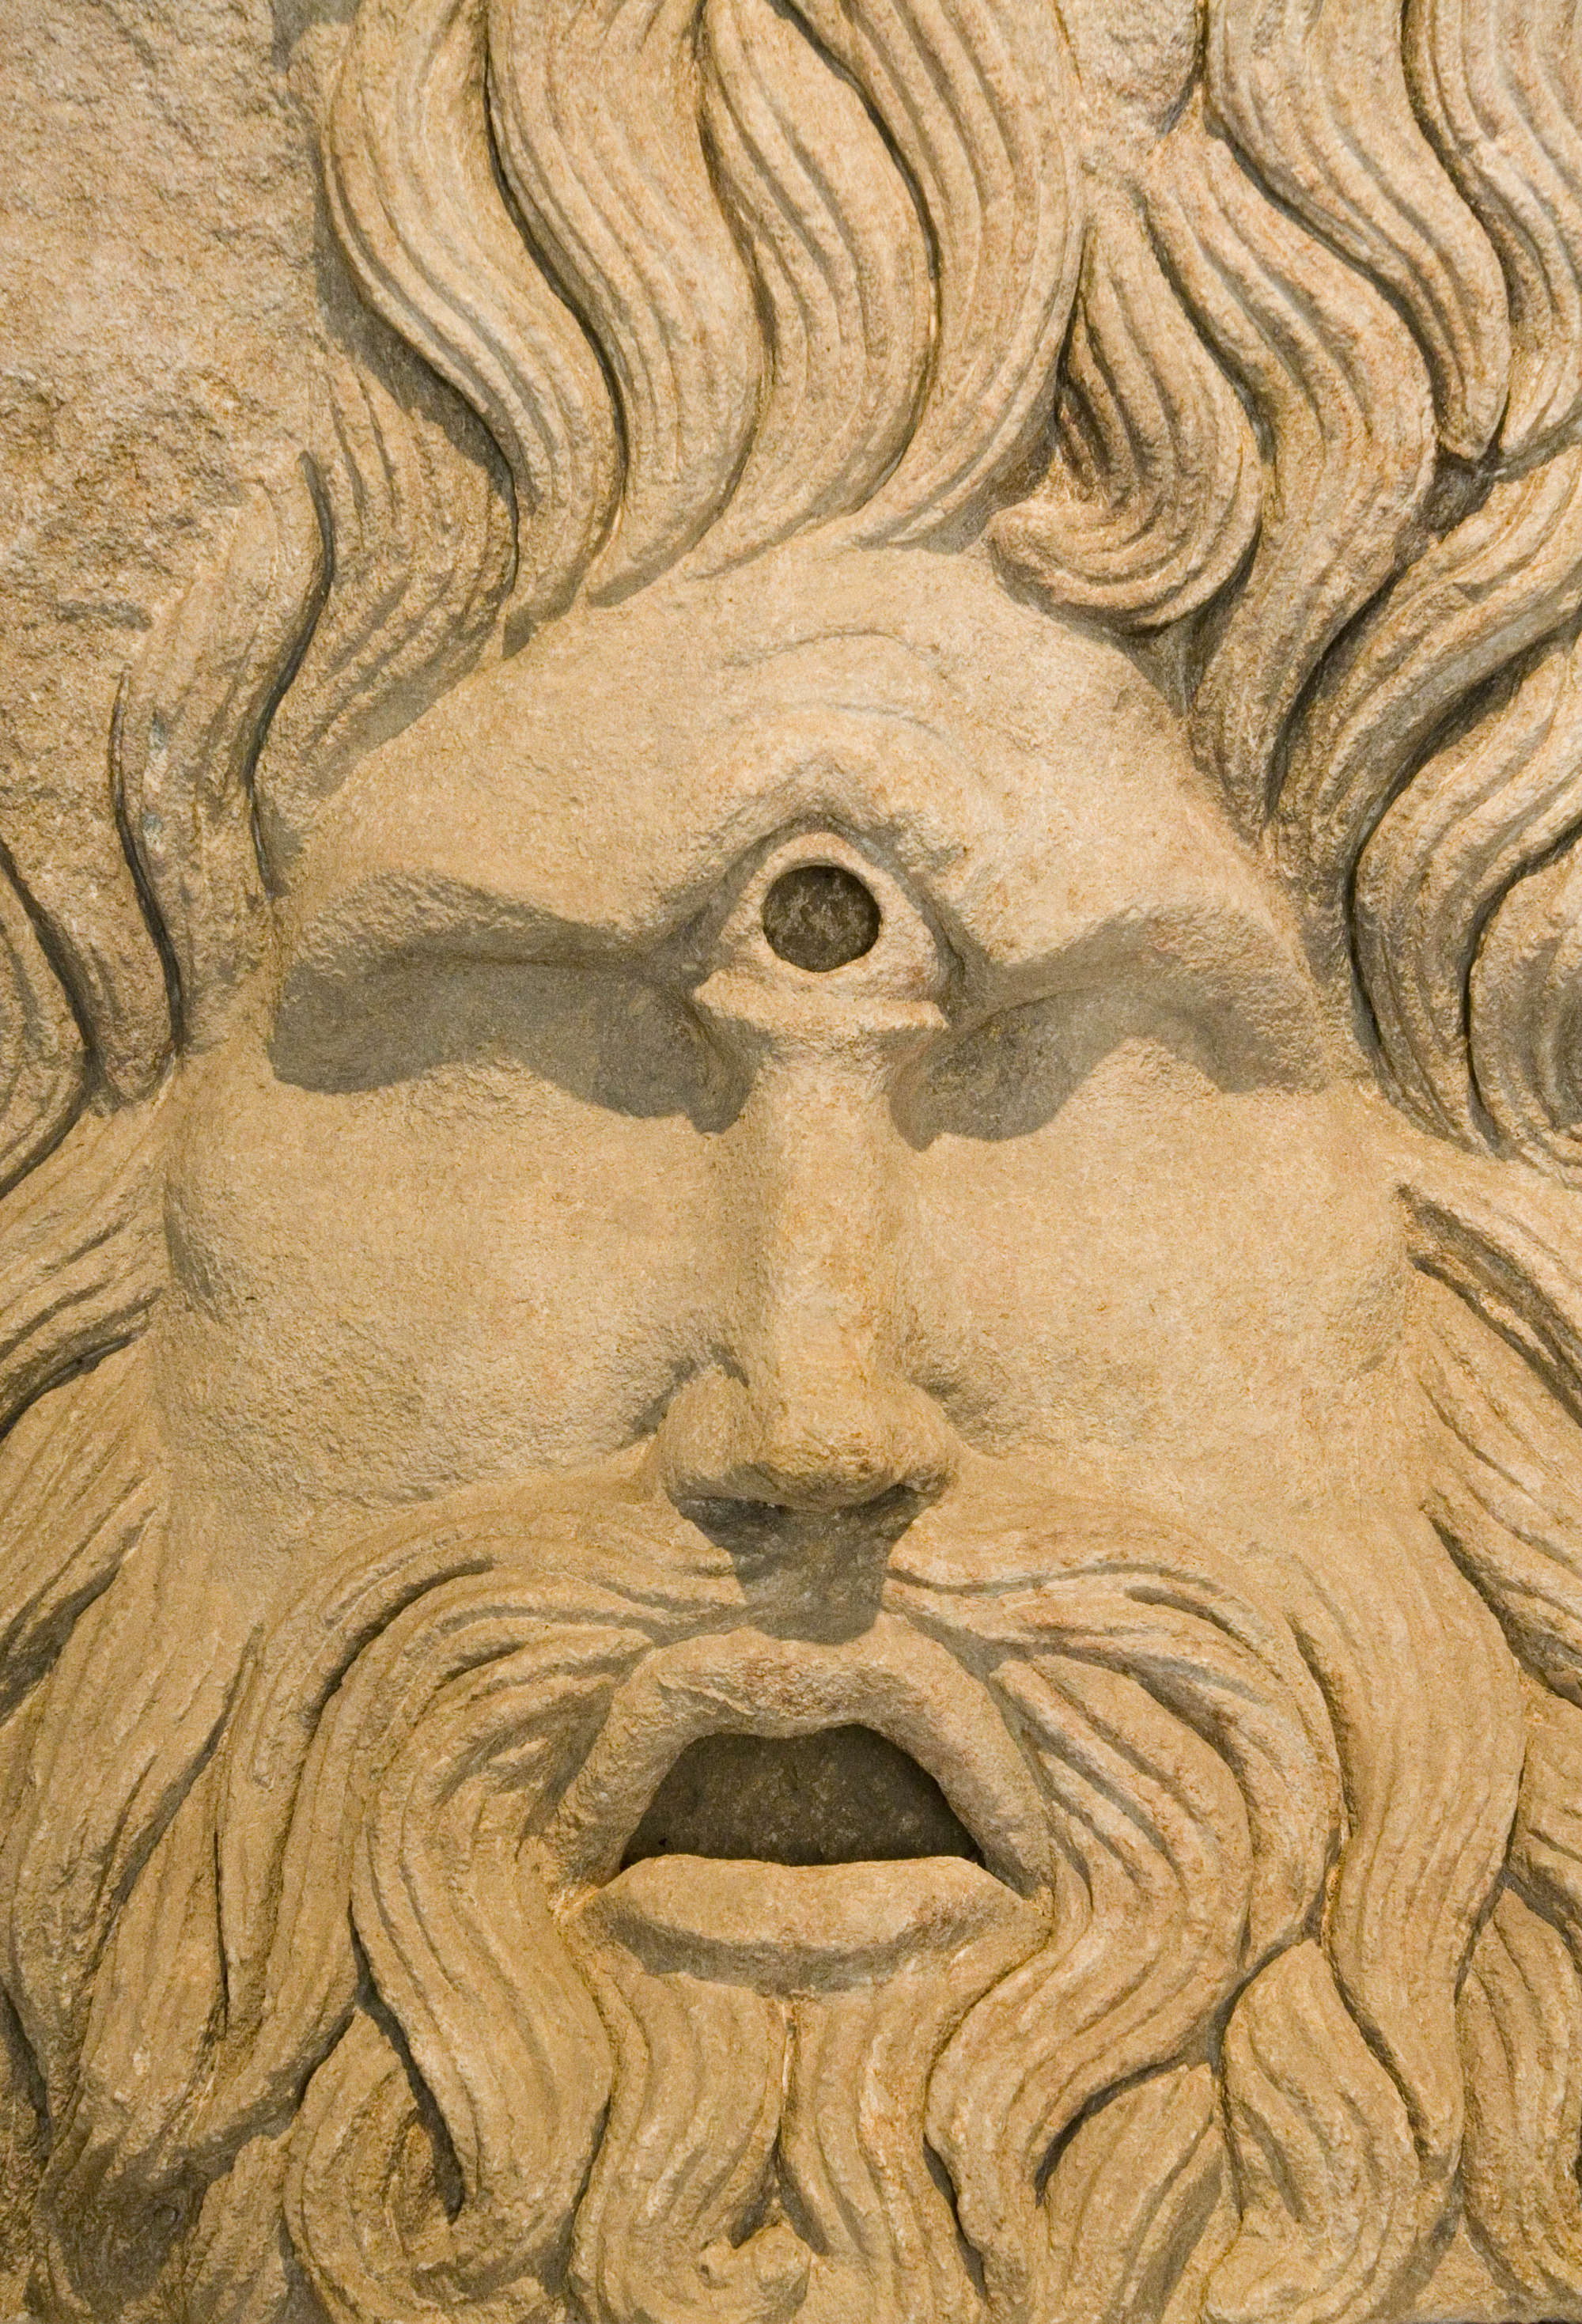 What Are Three Symbols for the Cyclops? | Synonym